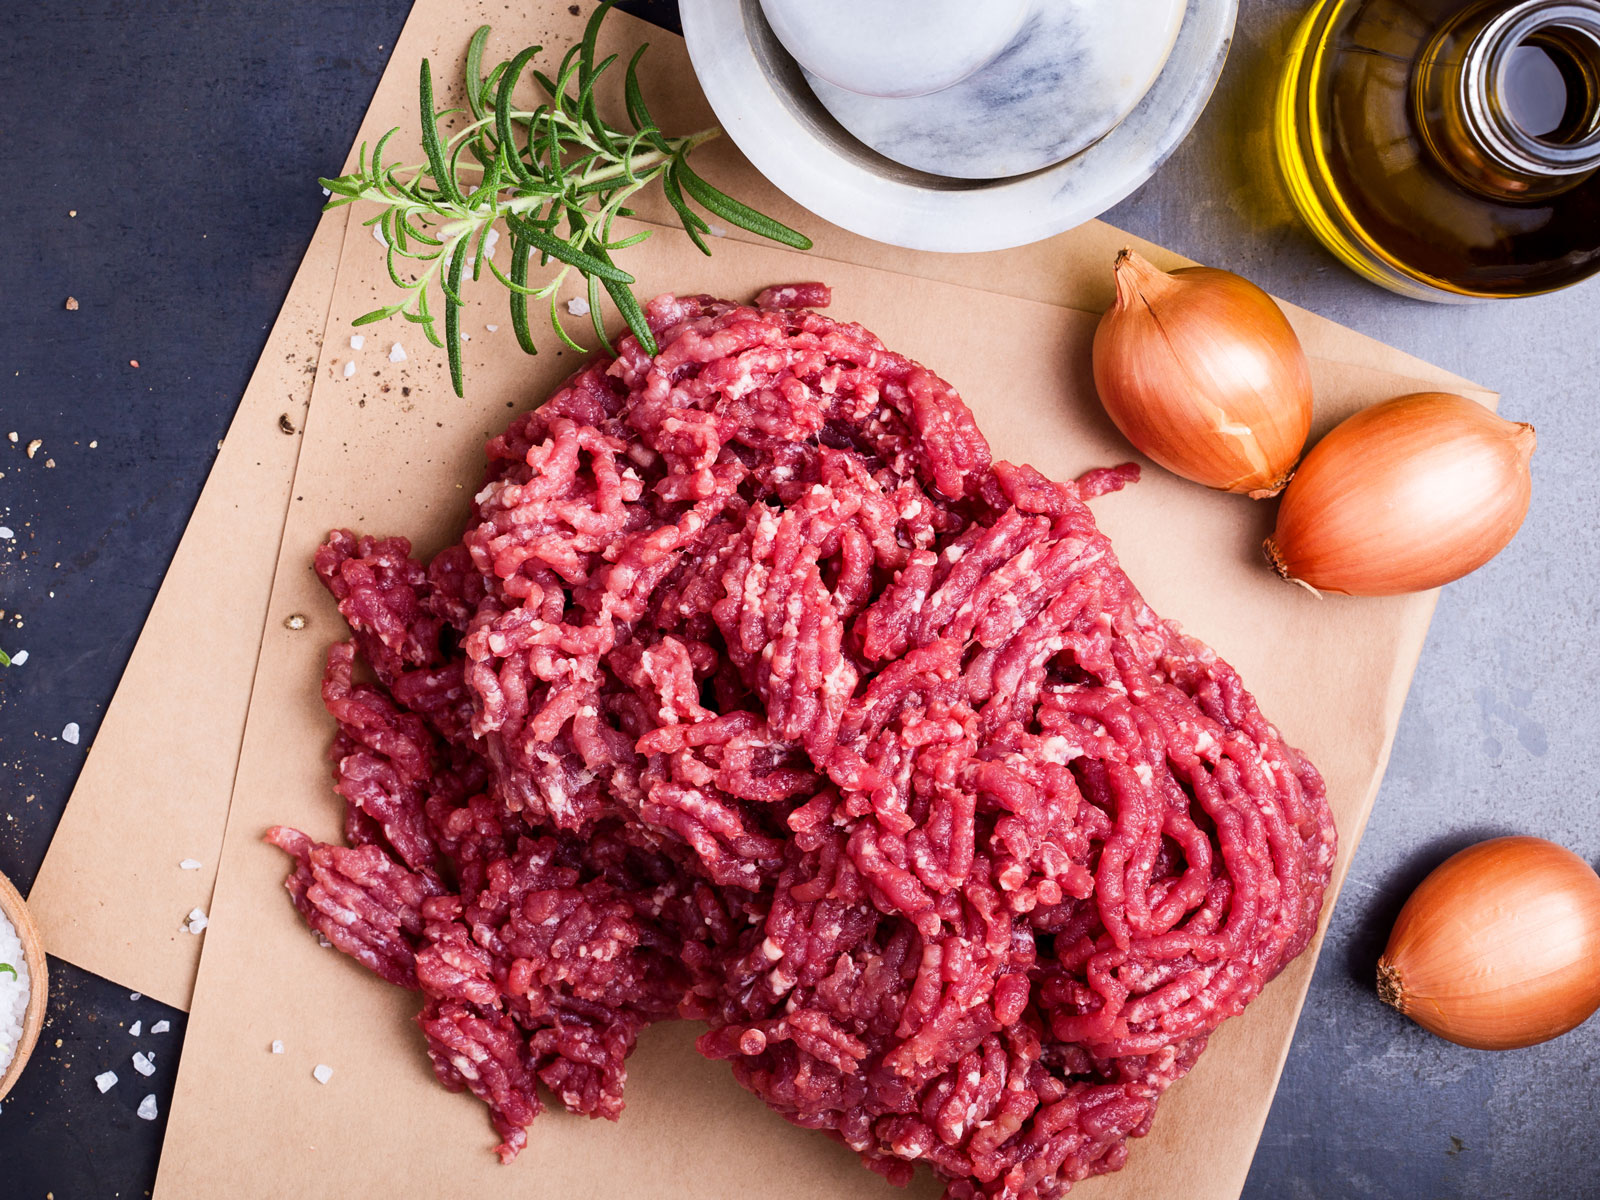 CDC Ground Beef Warning